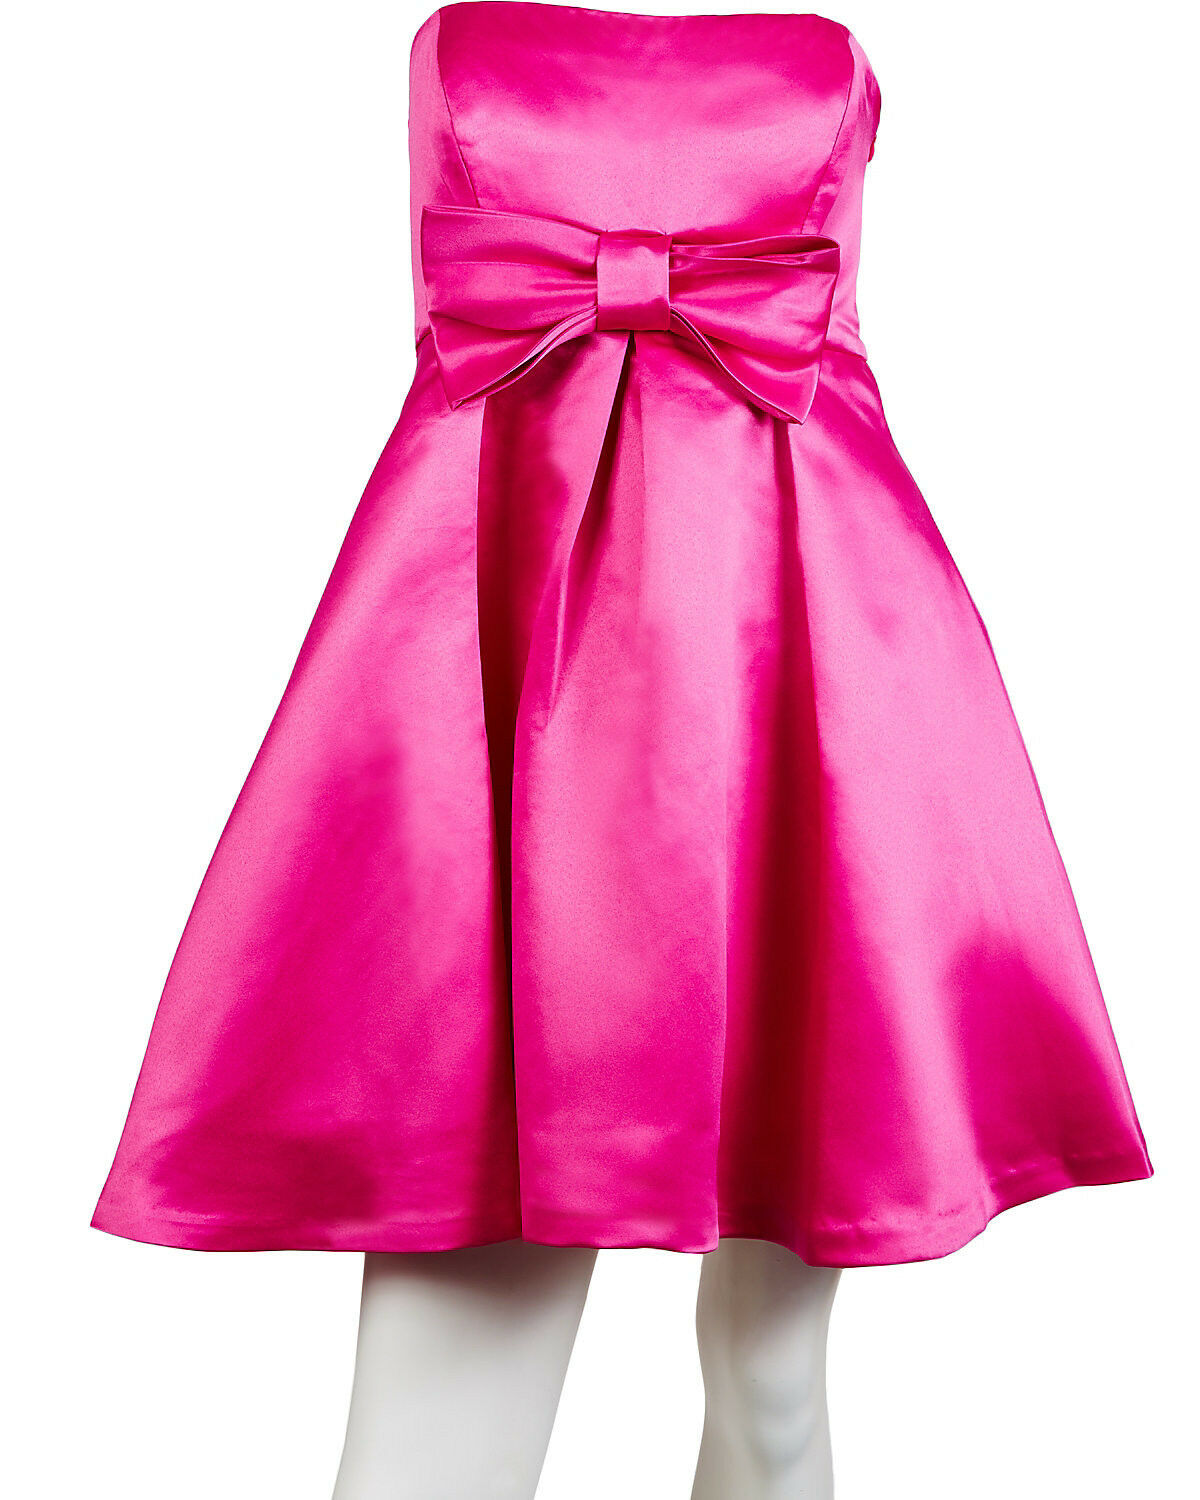 Betsey Johnson Dress Bow Party Dress in Pink Satin Sheen-NWT  RP